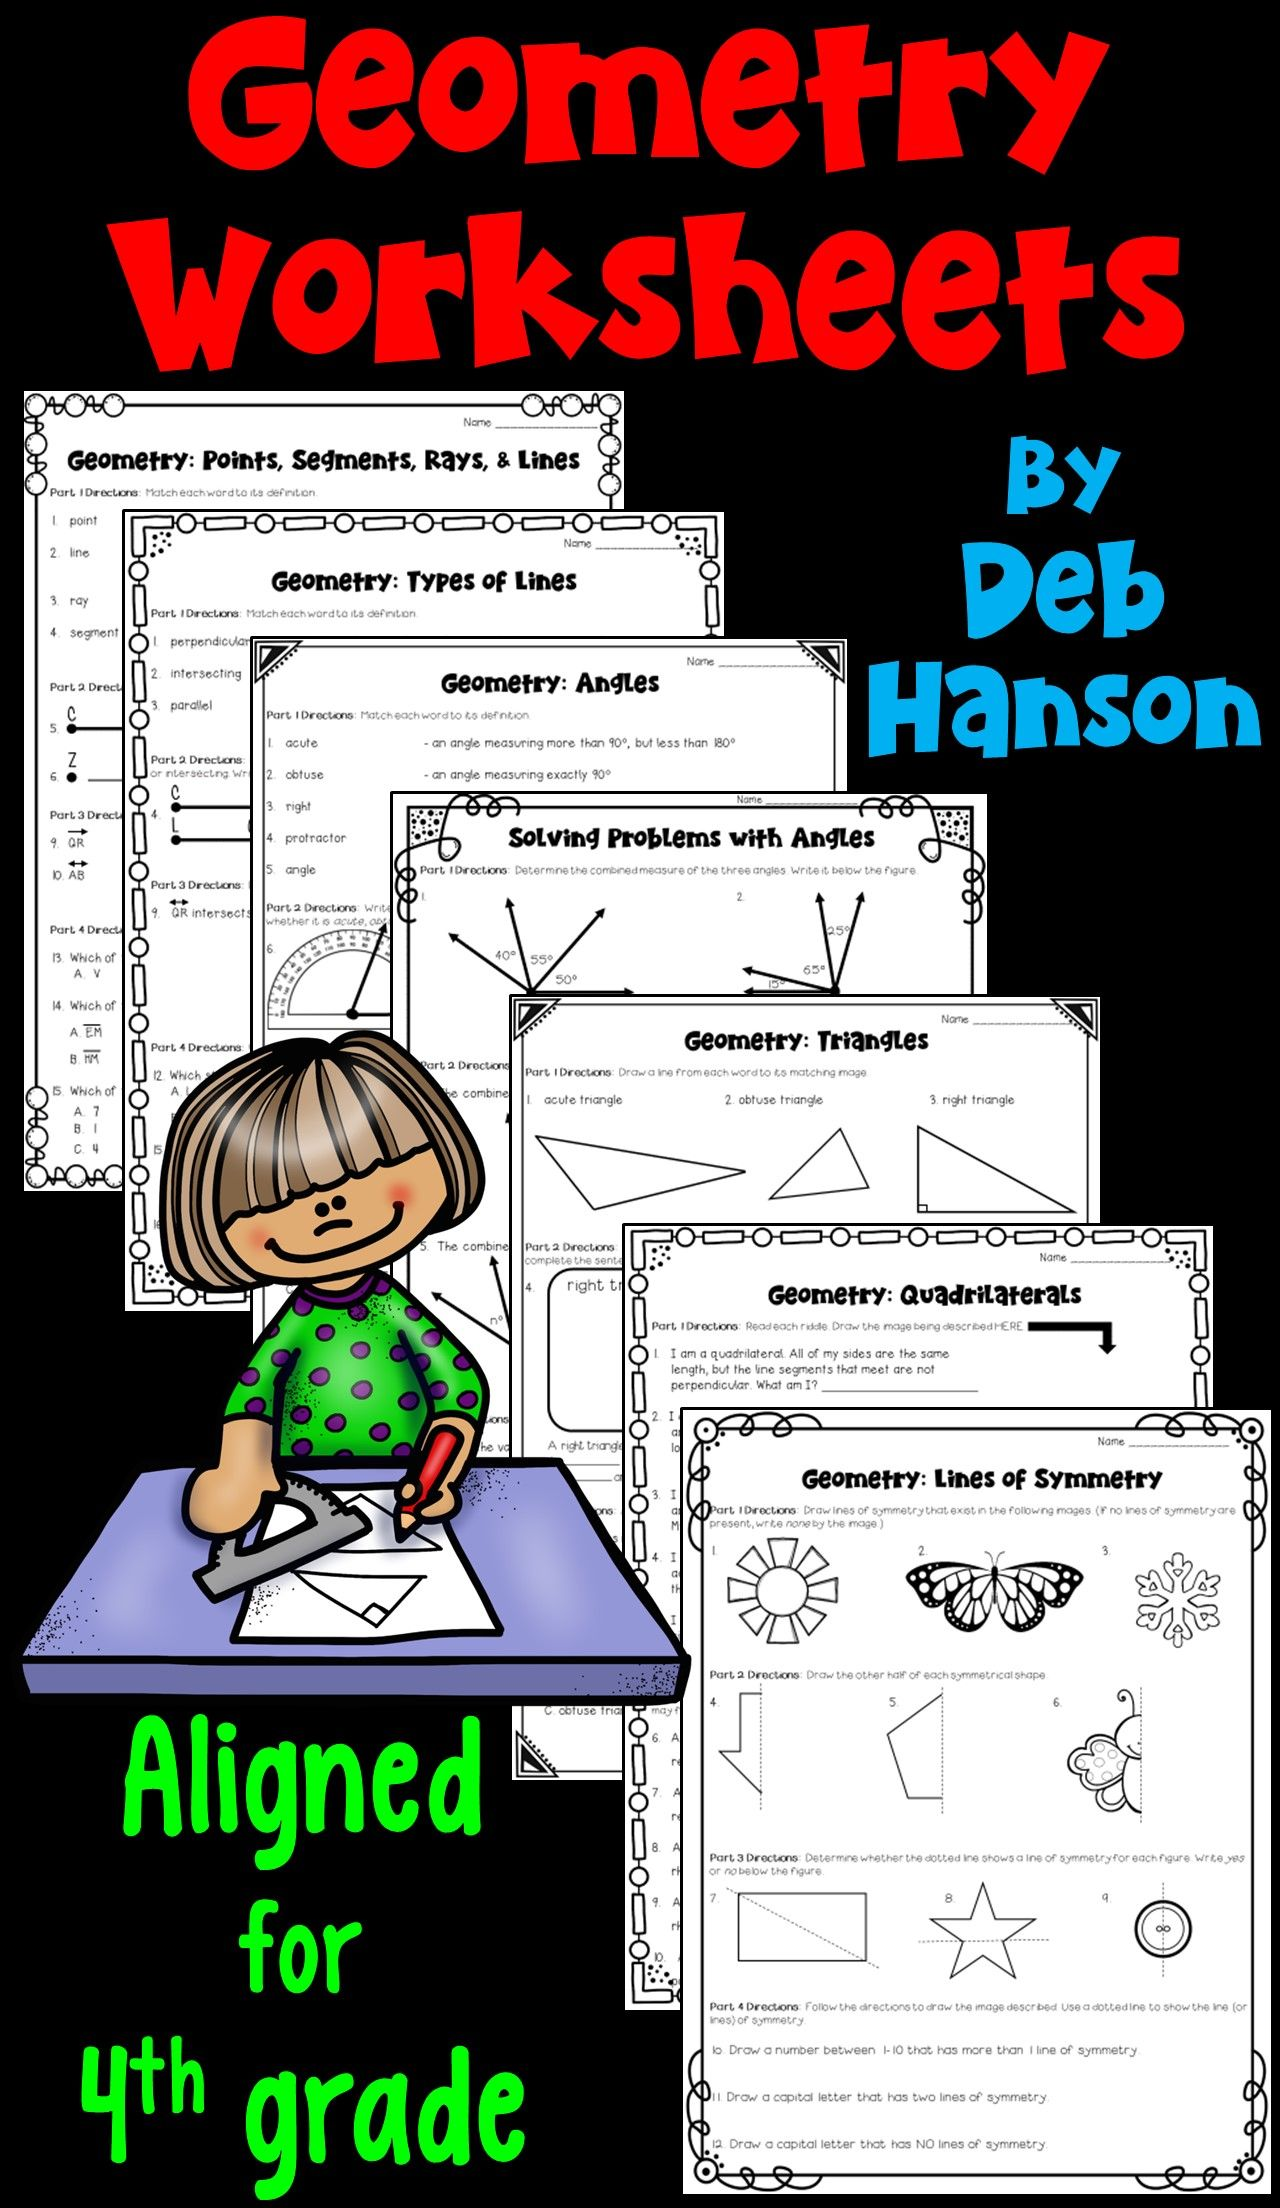 medium resolution of Geometry Worksheets for 4th grade! This set of 7 worksheets focus on lines